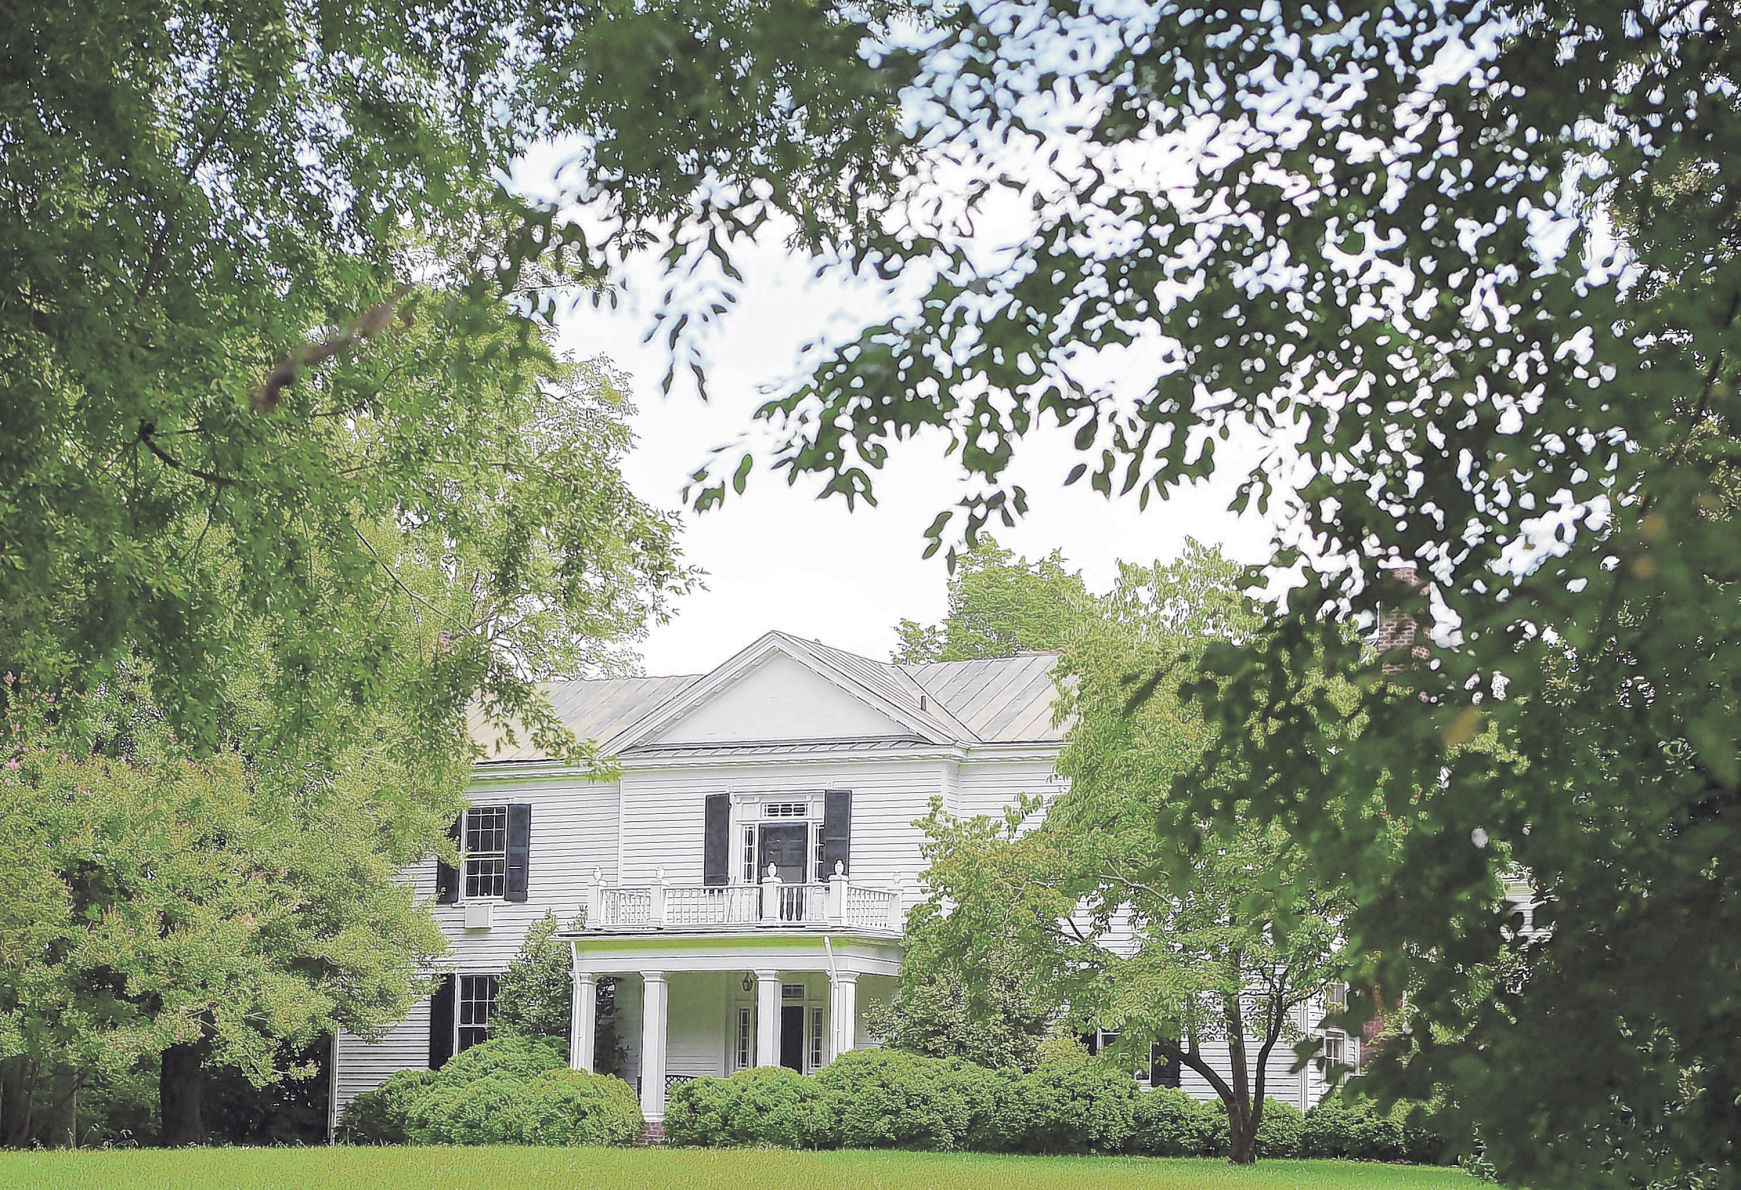 locust thicket property now listed for sale instead of auction rh newsadvance com